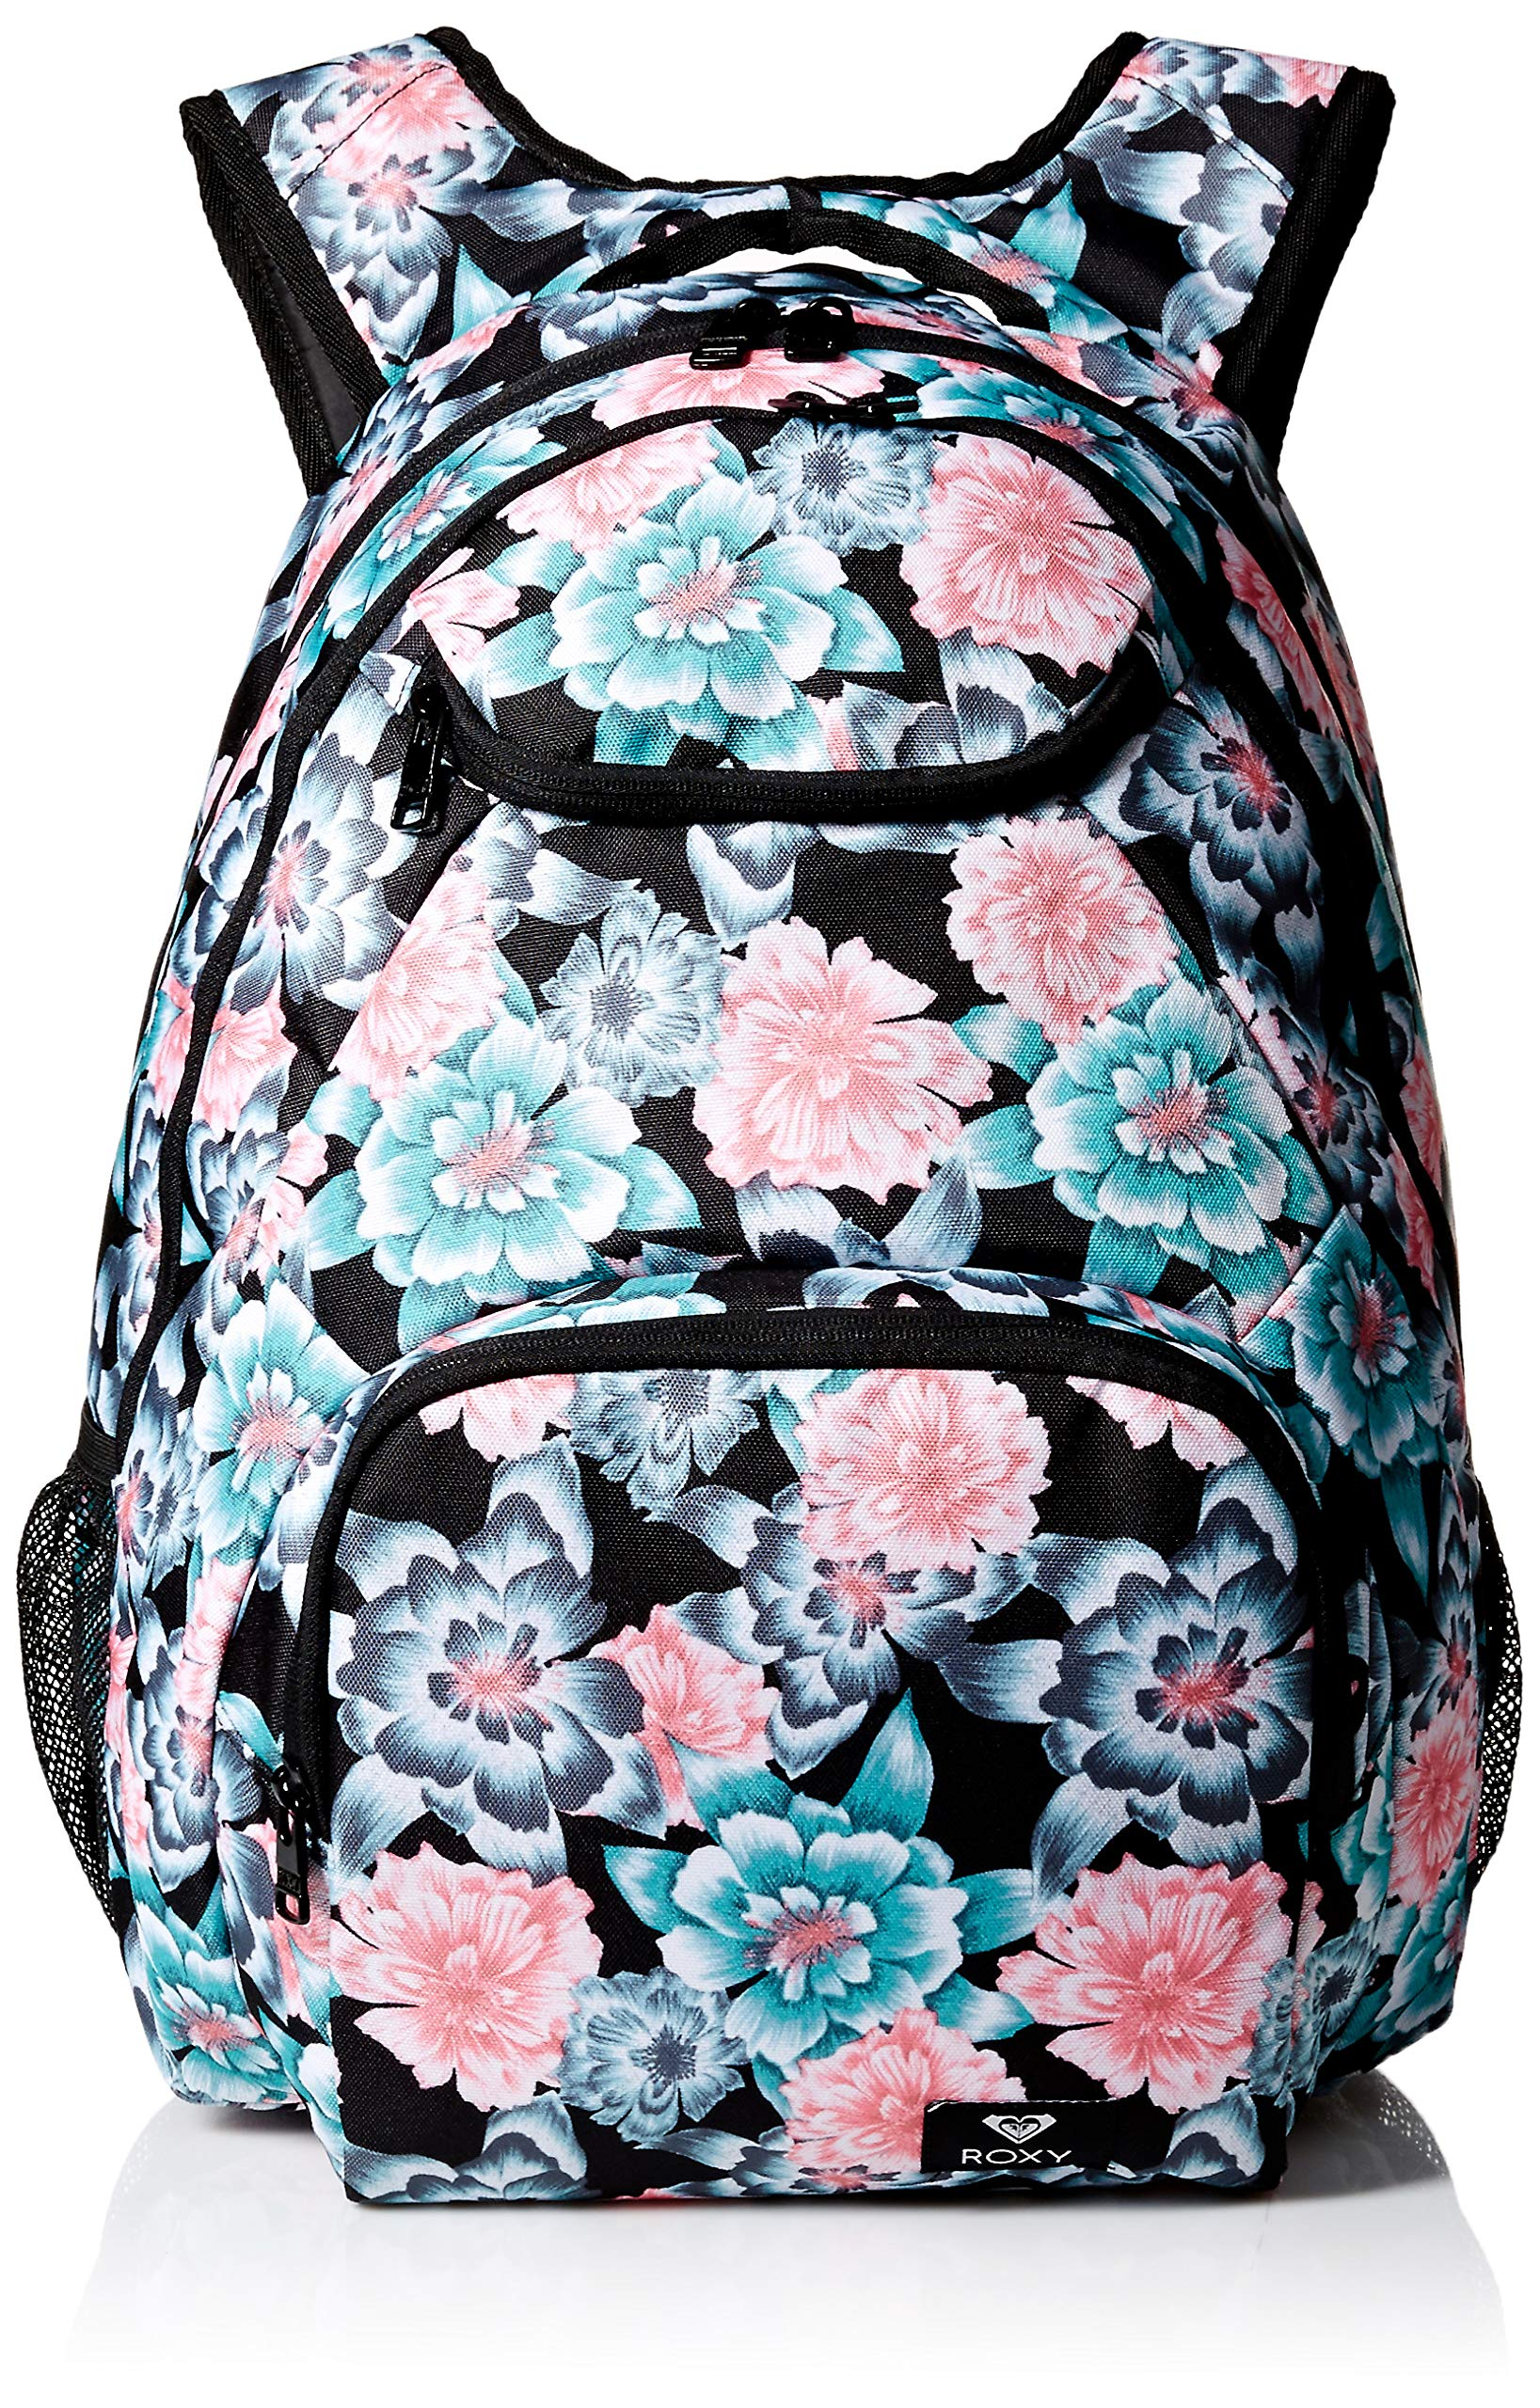 Roxy Women's Shadow Swell Backpack, anthracite sample crystal flower, 1SZ by Roxy